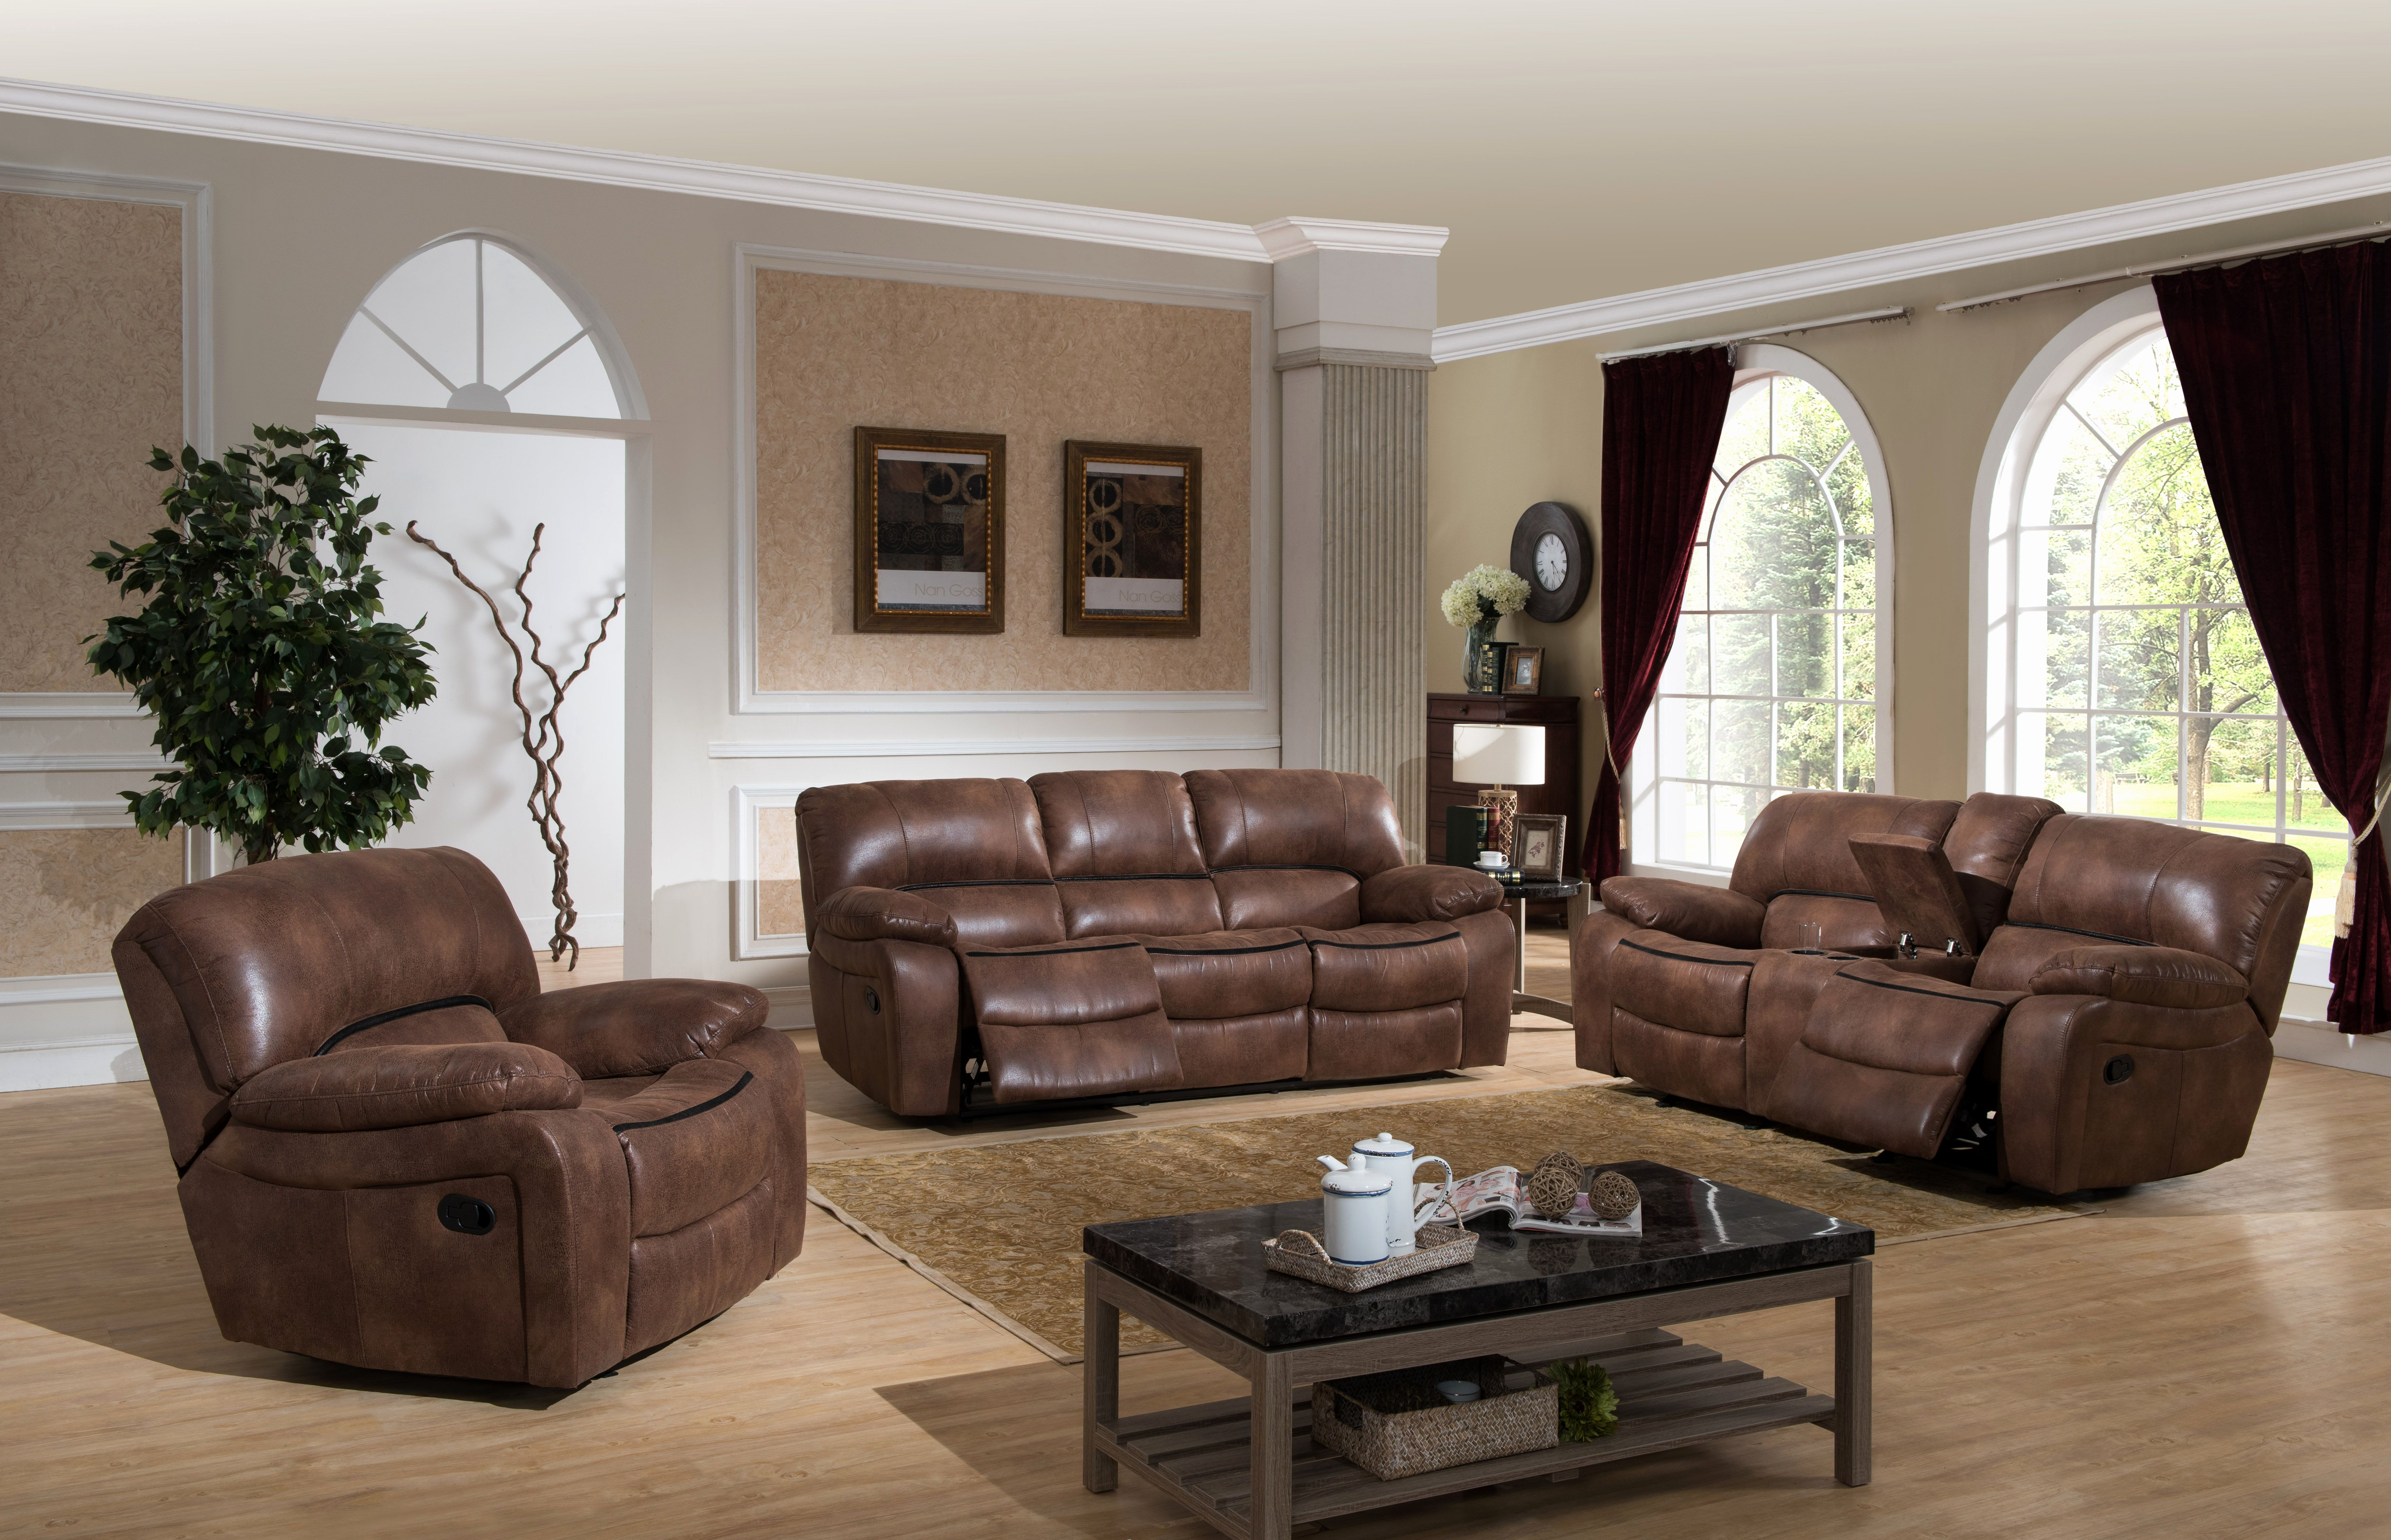 oversized living room furniture sets. Lovely sofa Set Deals Image living room oversized furniture 3  pc leather